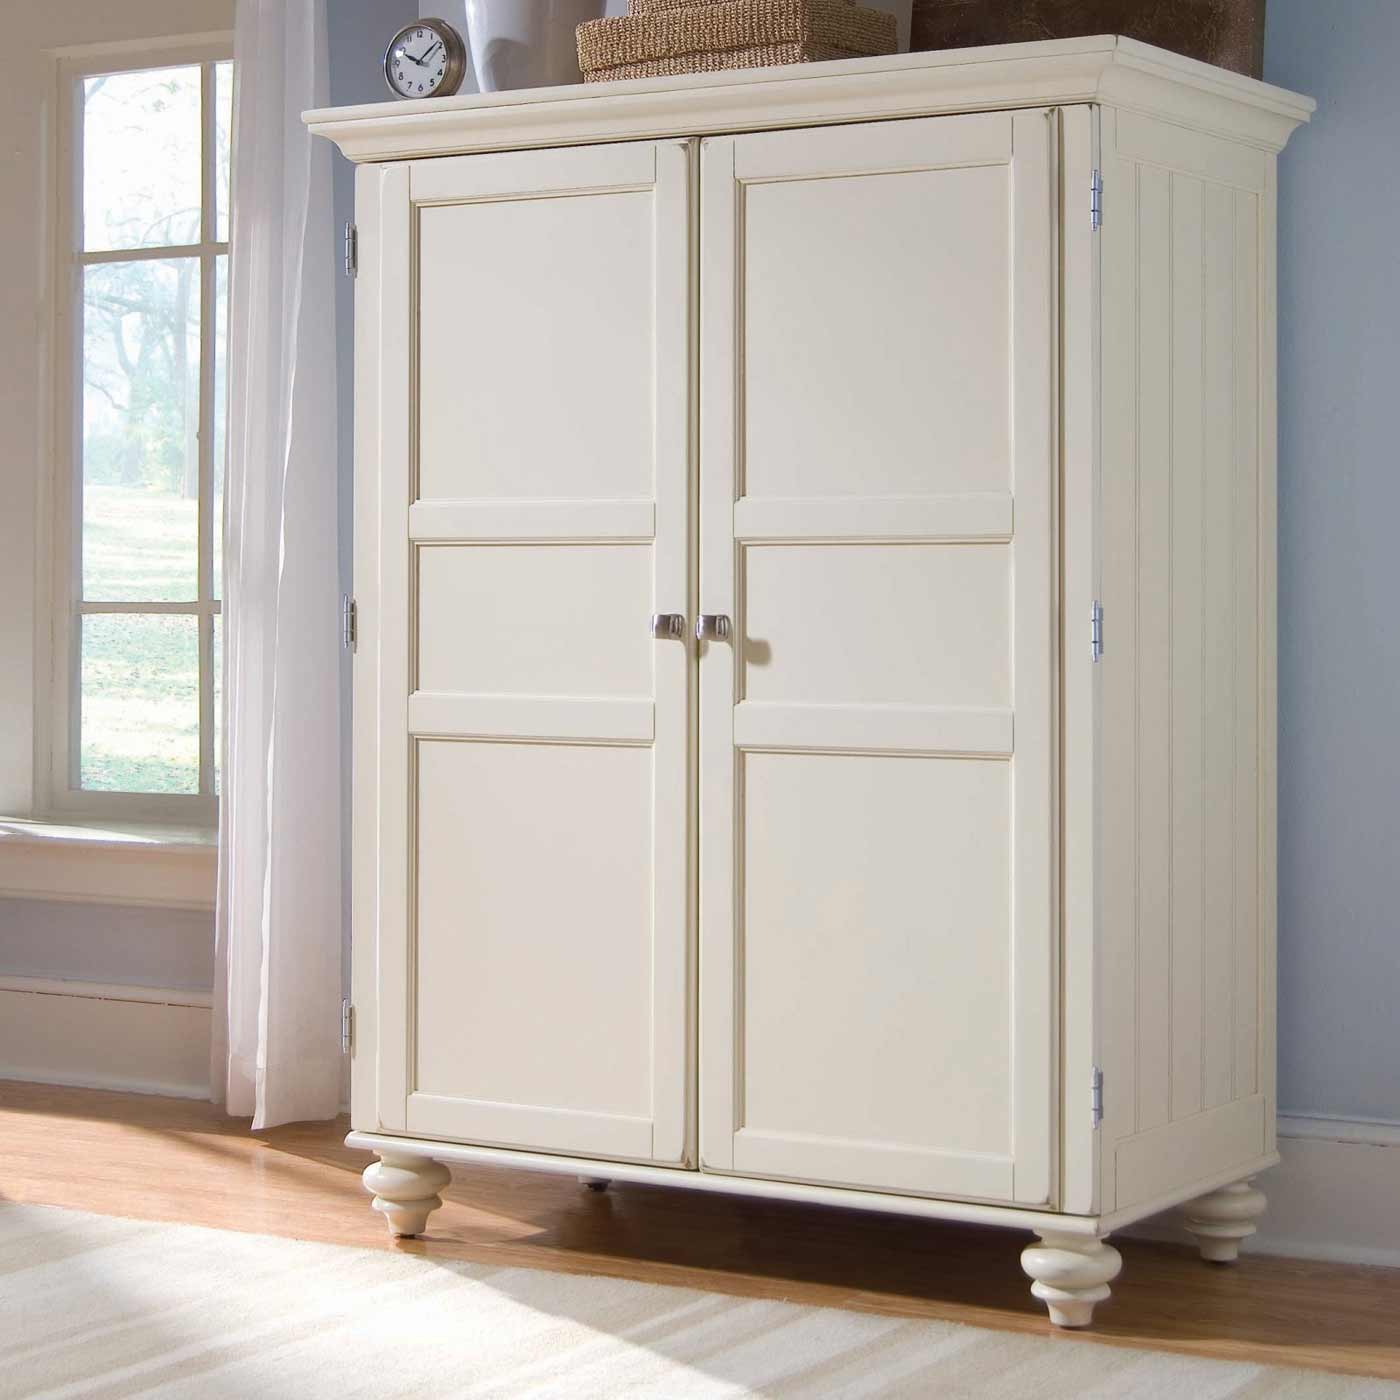 Morgan cheap armoire desk in cream white